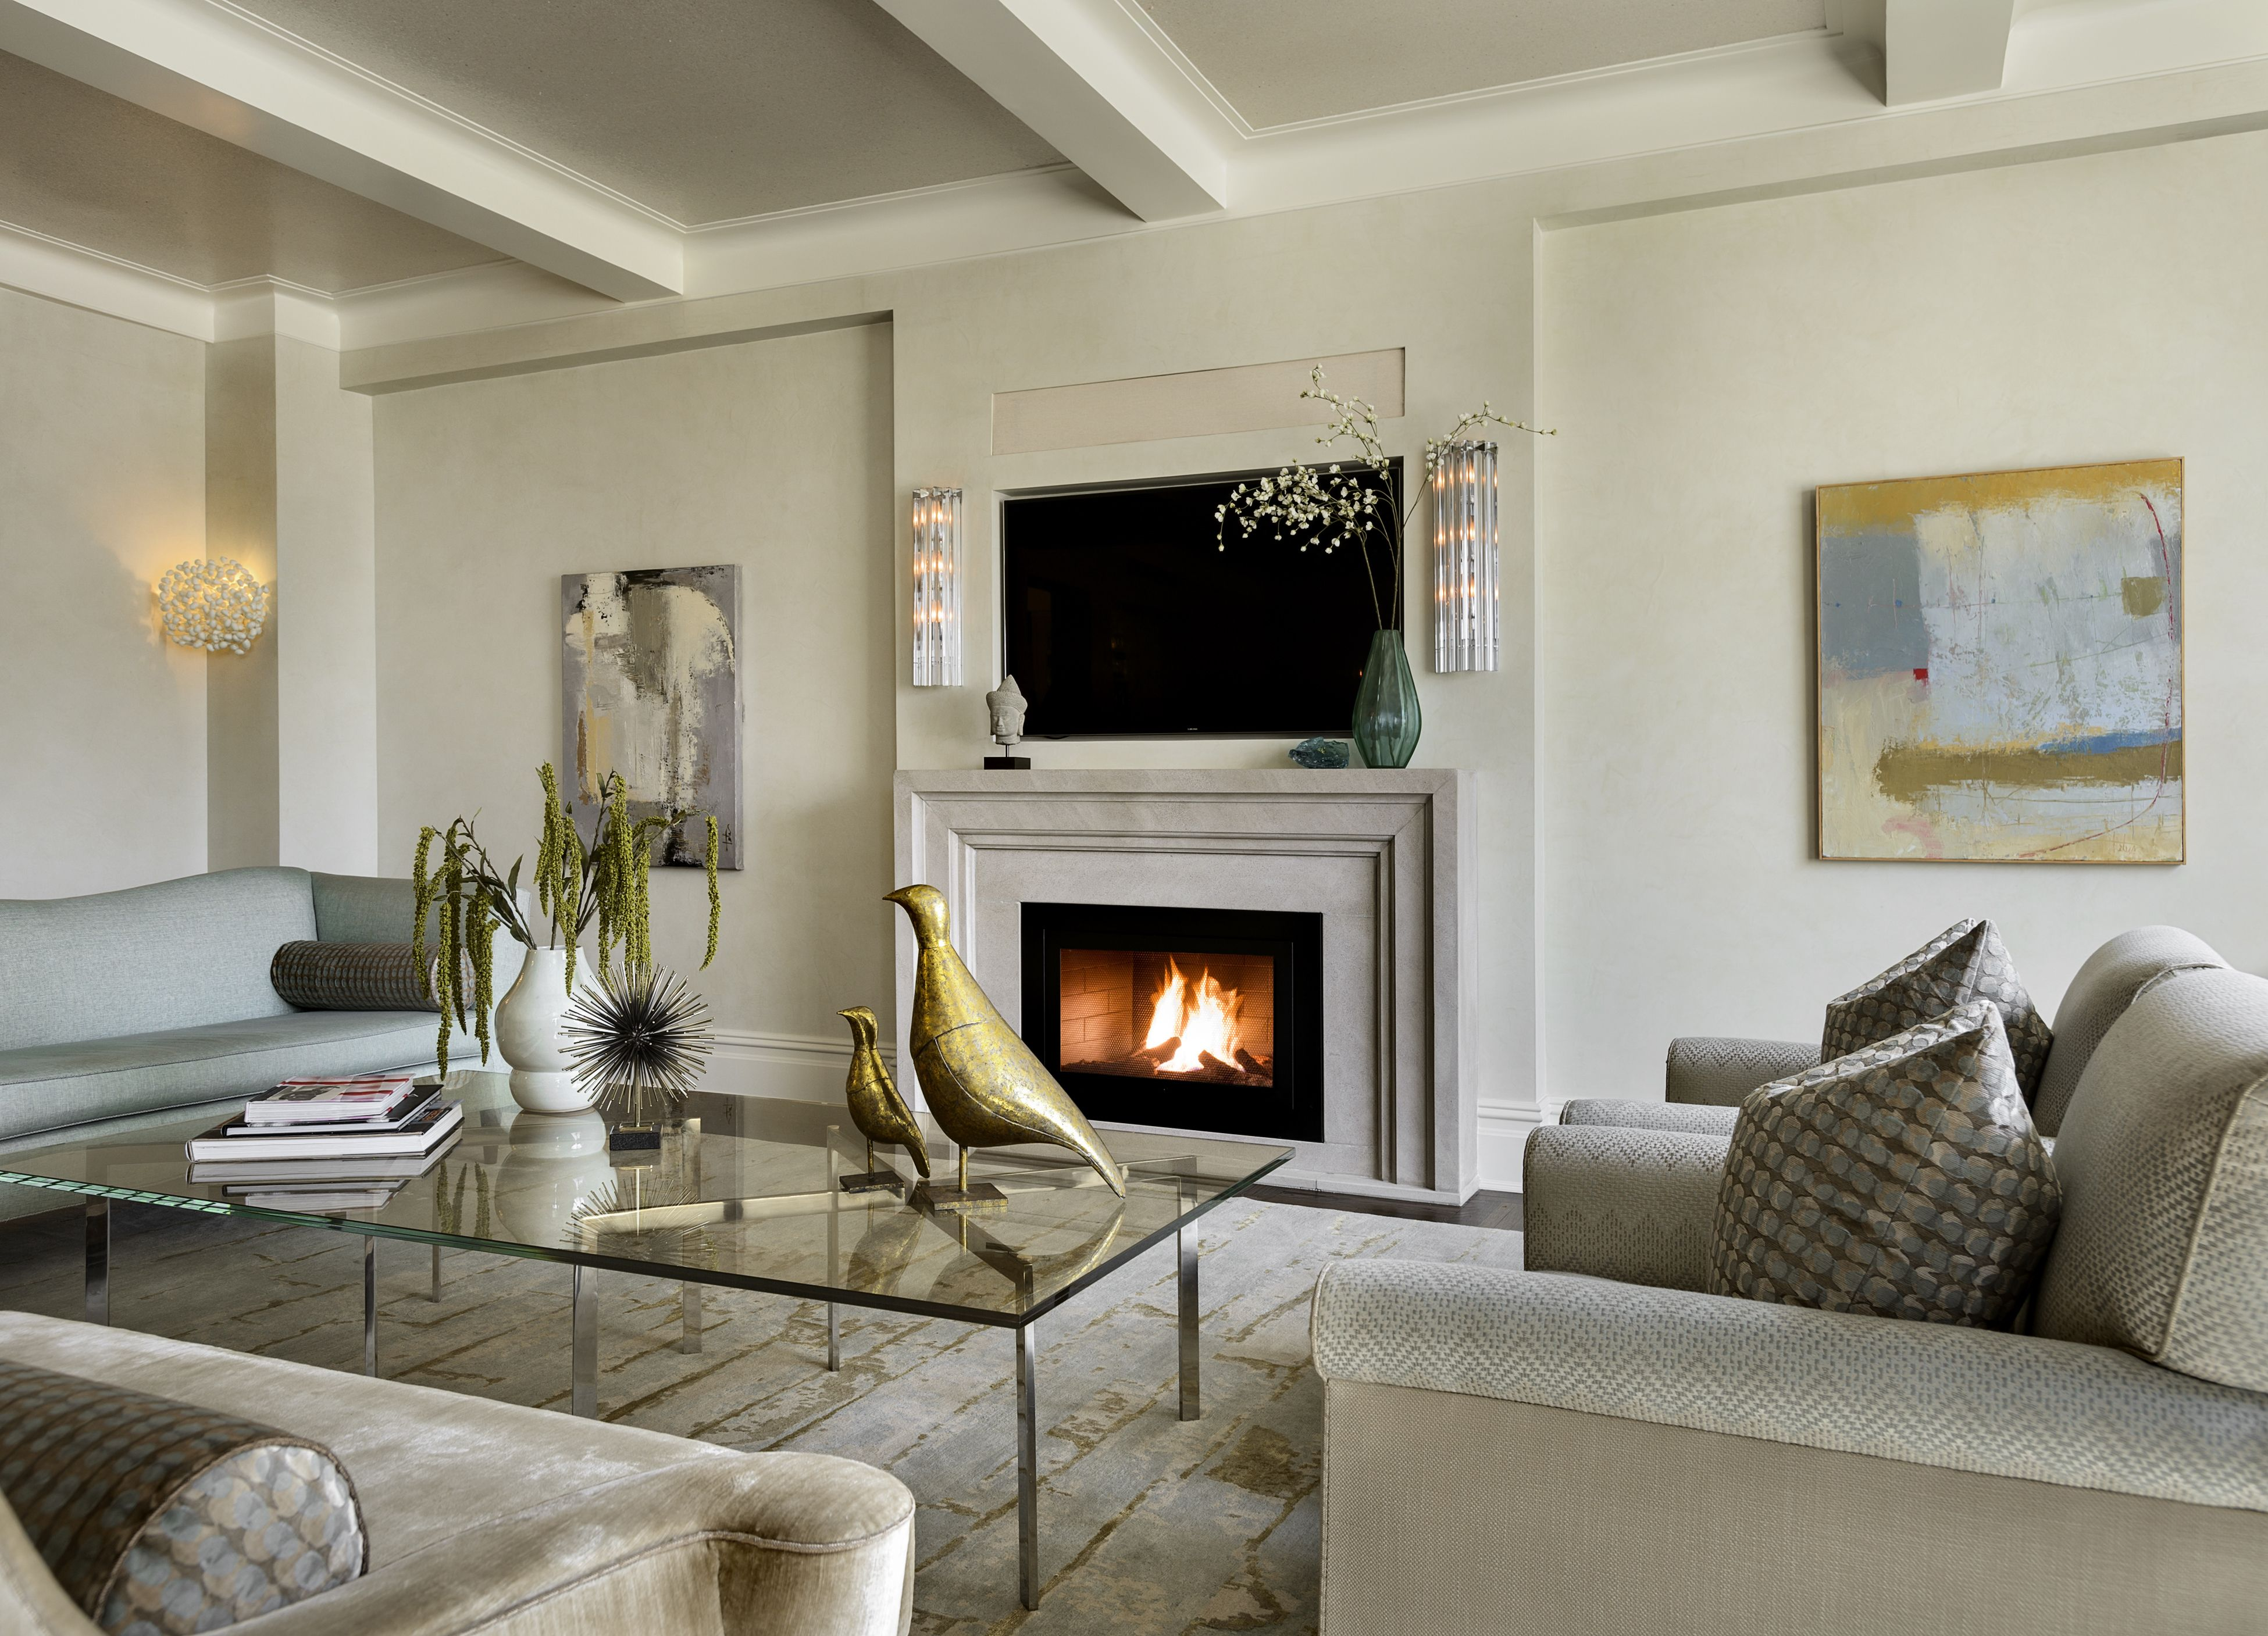 Brighten Your Day With This Lovely Nyc Living Room Complete With